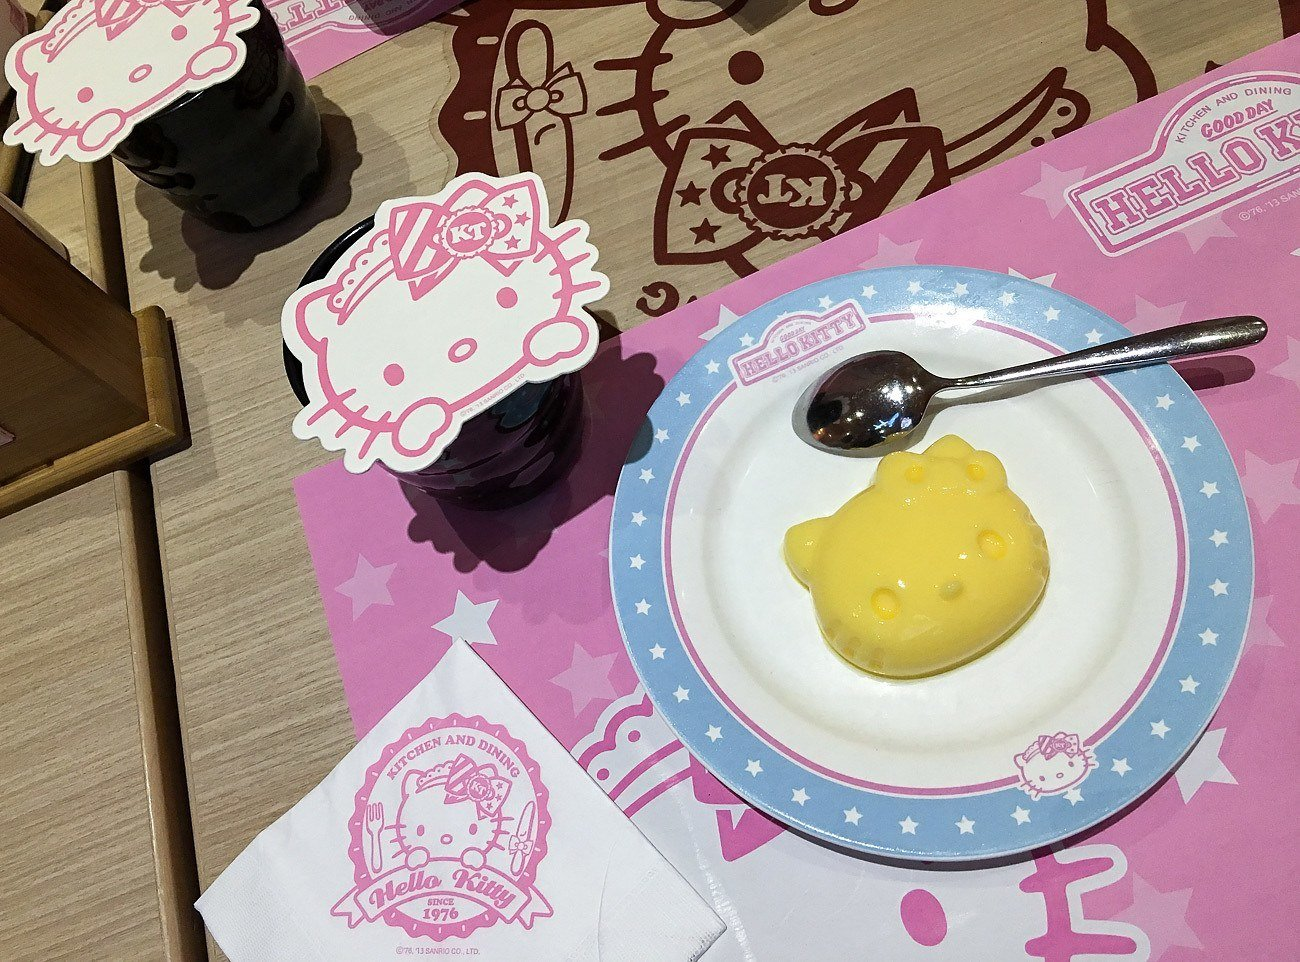 Dessert course at Hello Kitty Kitchen and Dining, a Taipei theme restaurant.